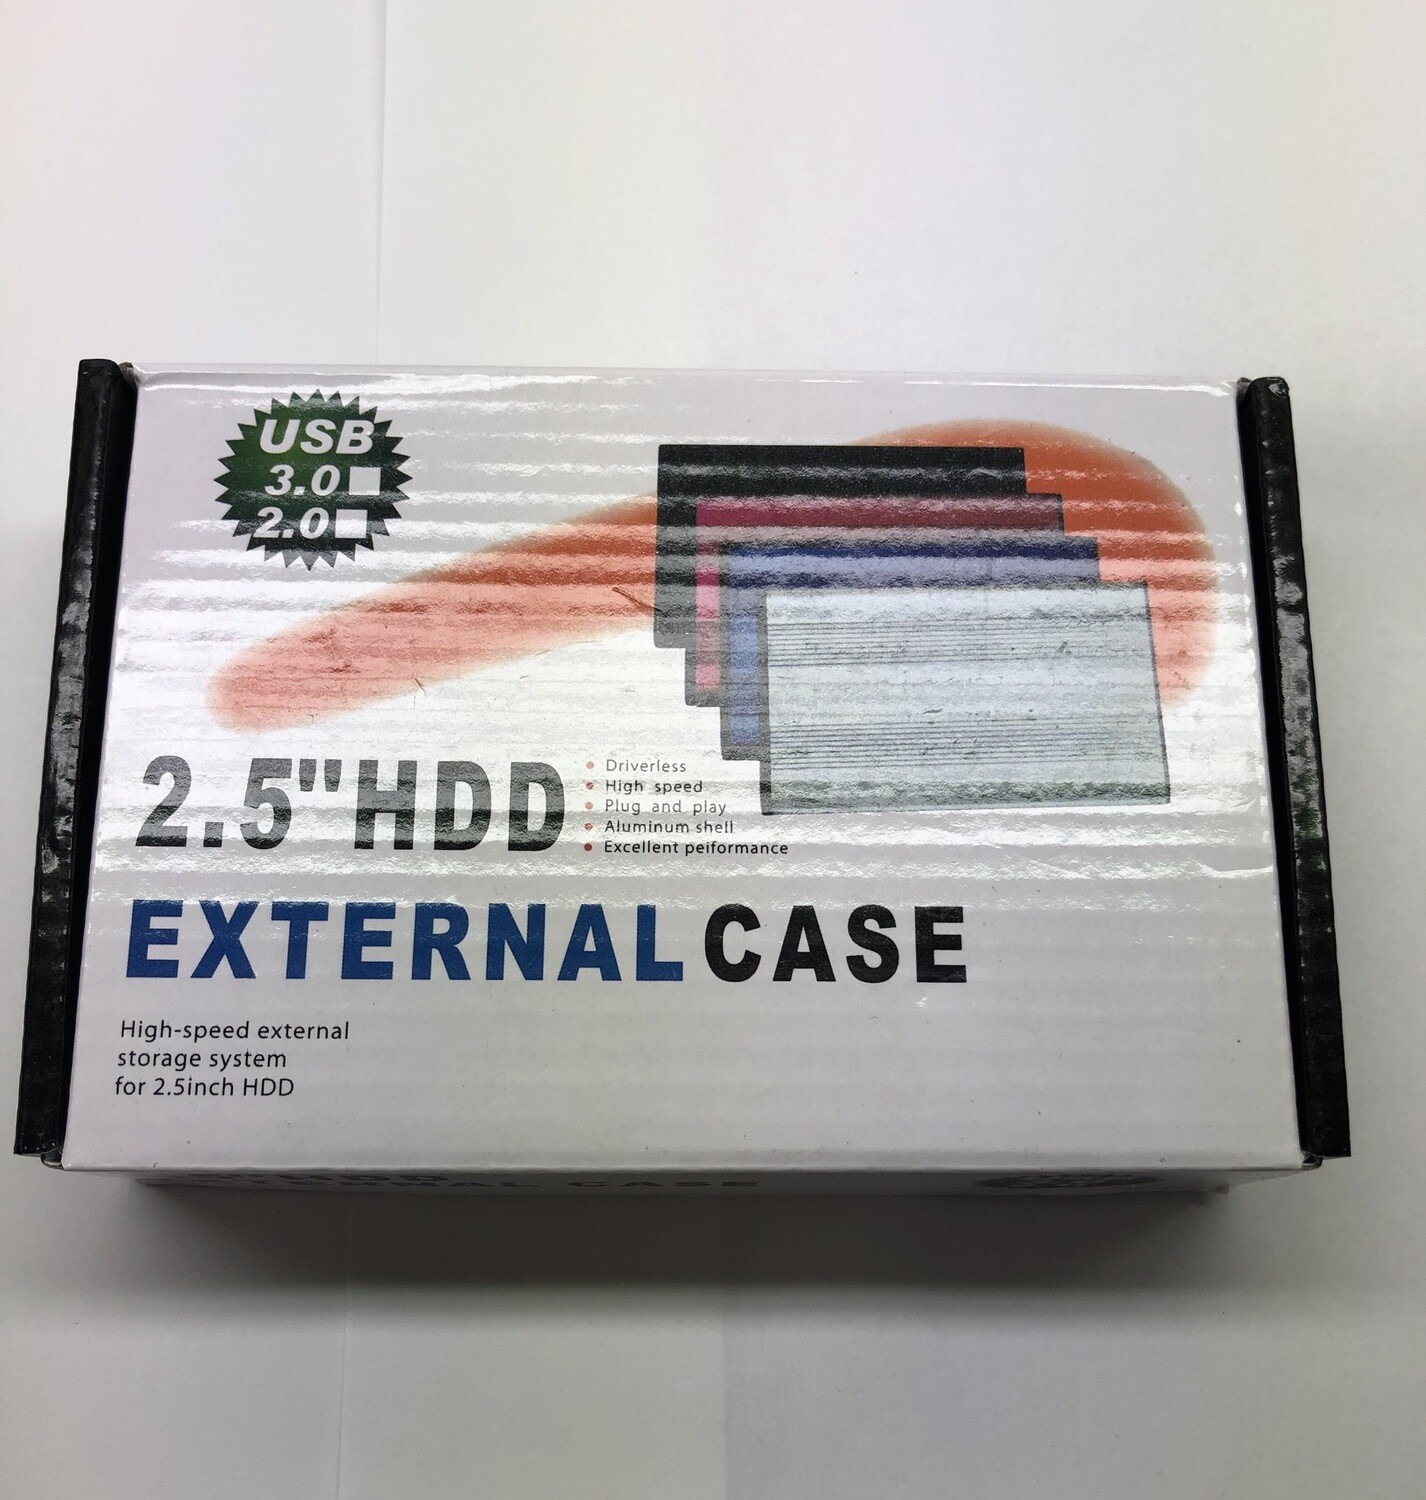 2.5'HDD External Case (USB 3.0/2.0)